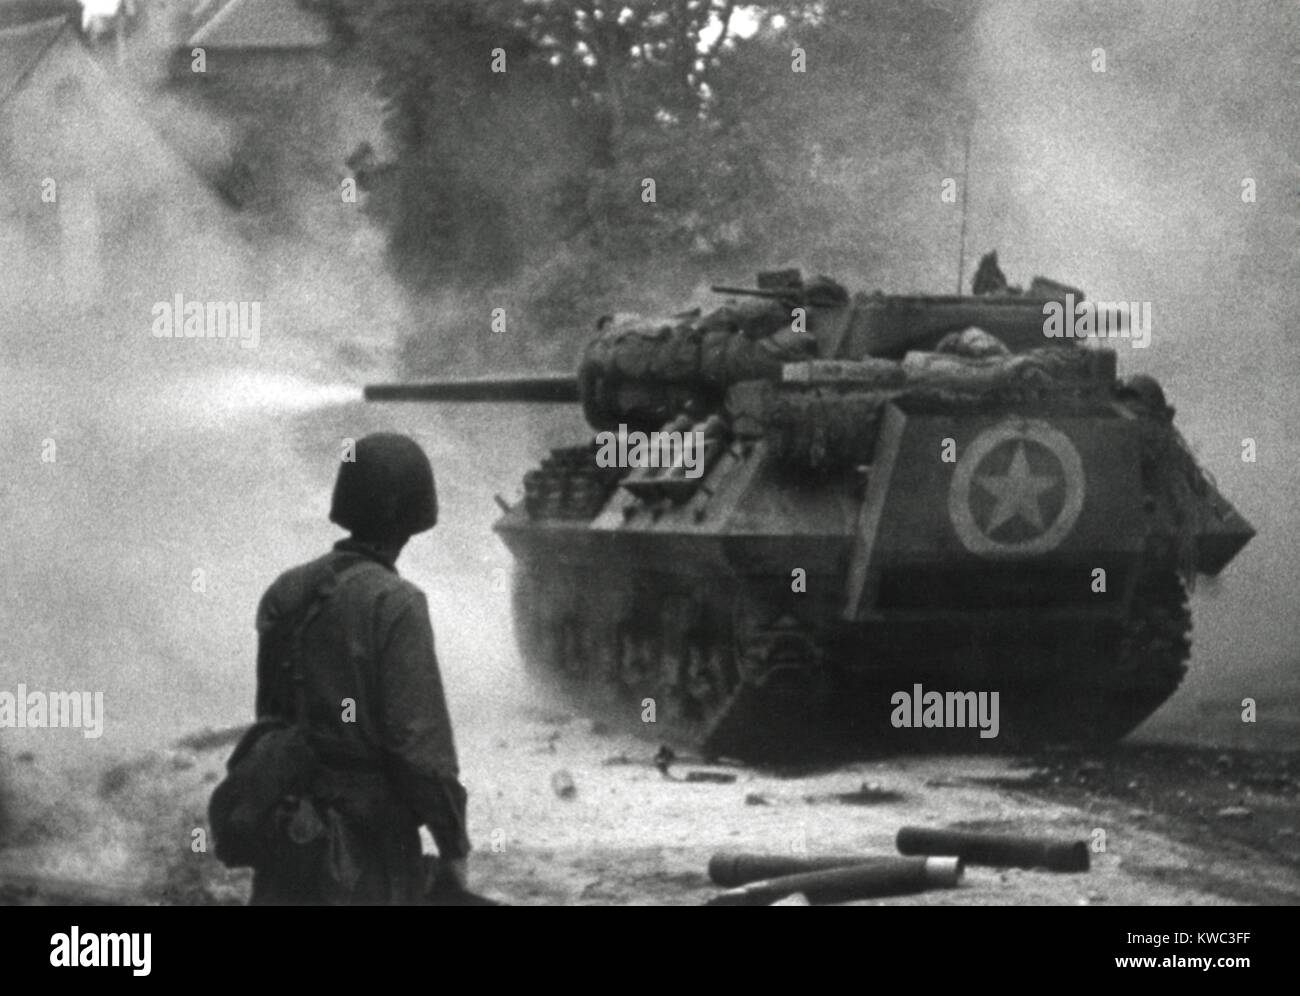 U.S. tank firing in Saint Lo, France, July 1944. The Norman town strategically located at the intersection of main - Stock Image